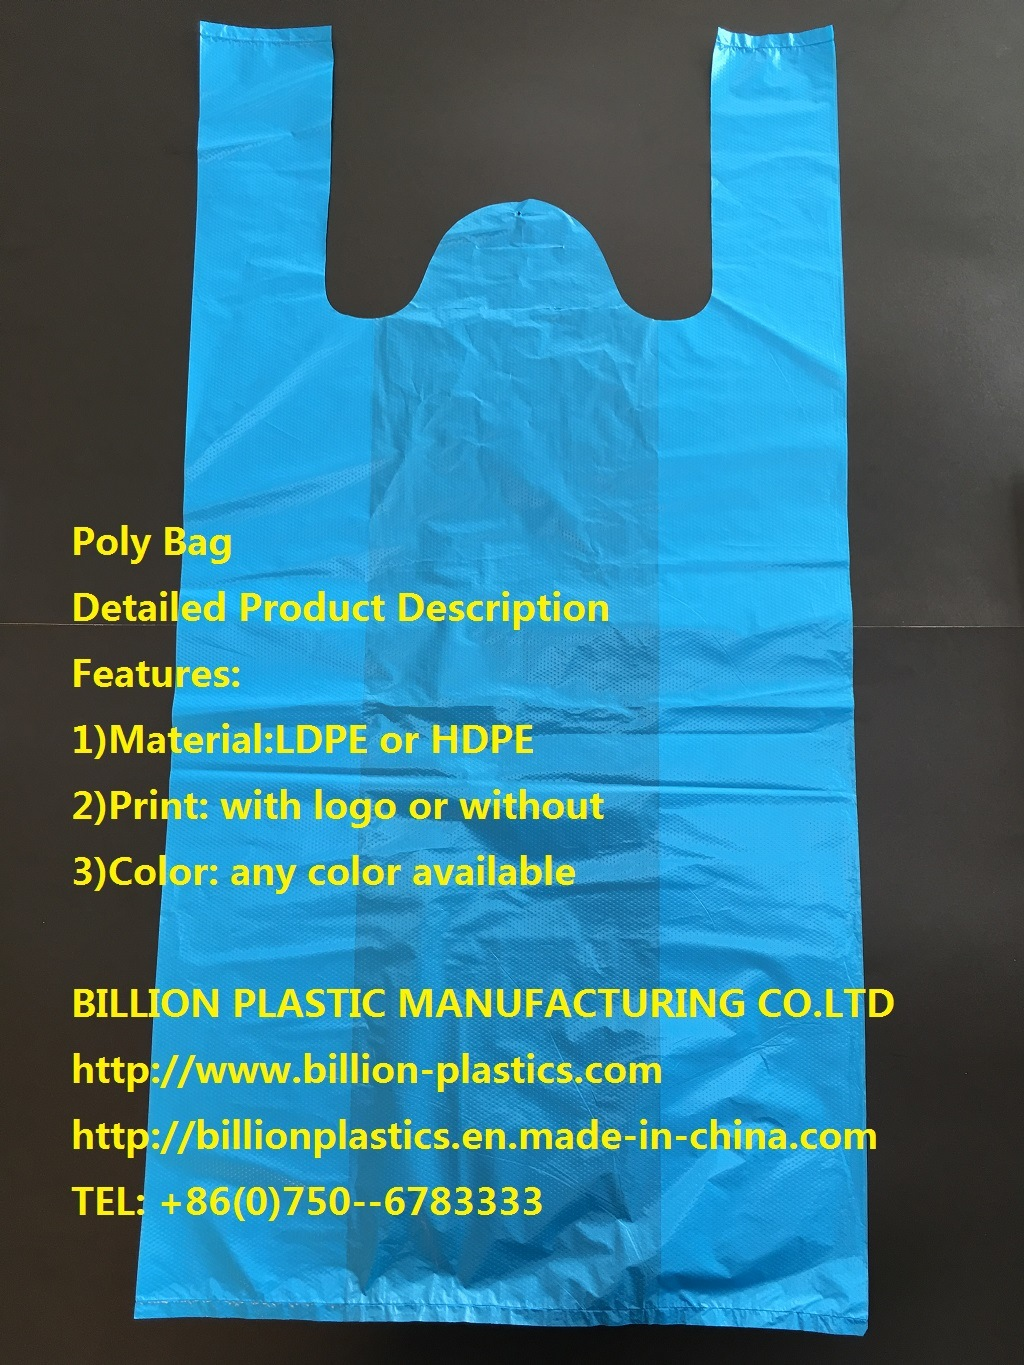 HDPE Plastic T-Shirt Bag Packing Vest Bag Shopping Bag Garbage Bag Rubbish Bag T-Shirt Bag Carrier Bag Shopping Bag Polybag Gusset Bag